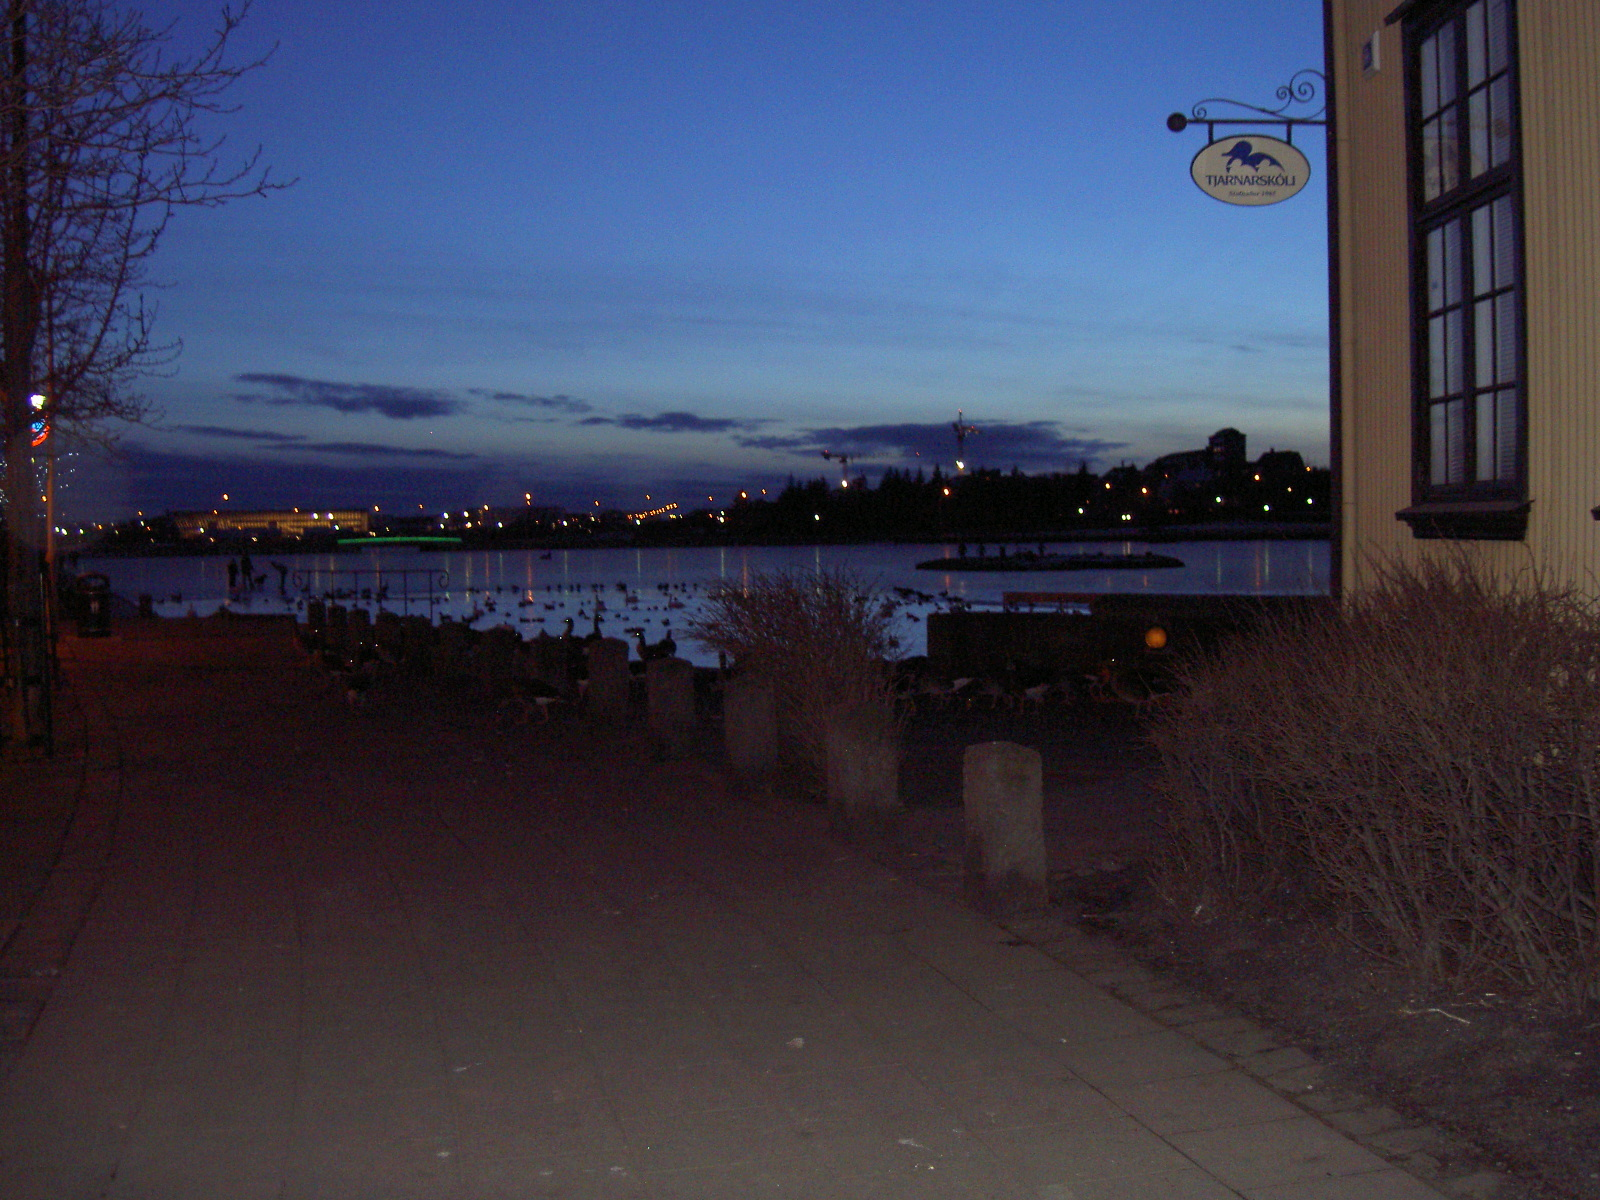 Evening view of Tjornin City Pond, Reykjavik (purpose of page is to display an image)